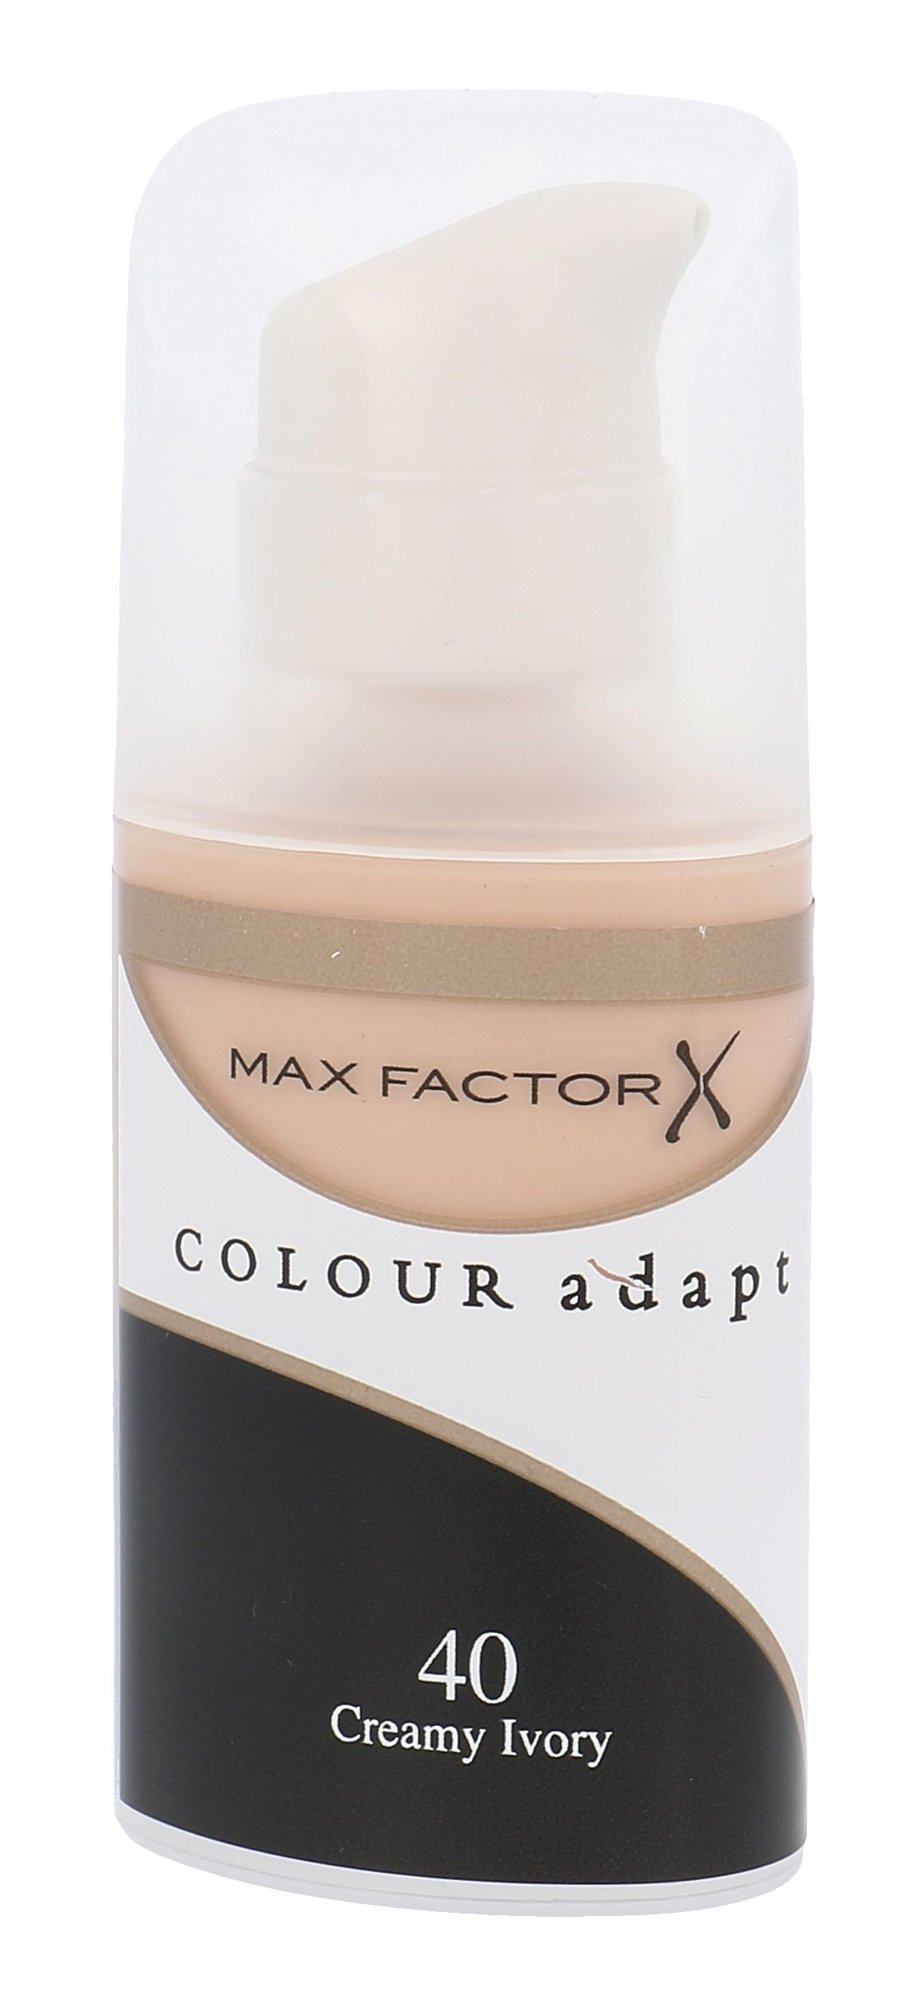 Kreminė pudra Max Factor Colour Adapt